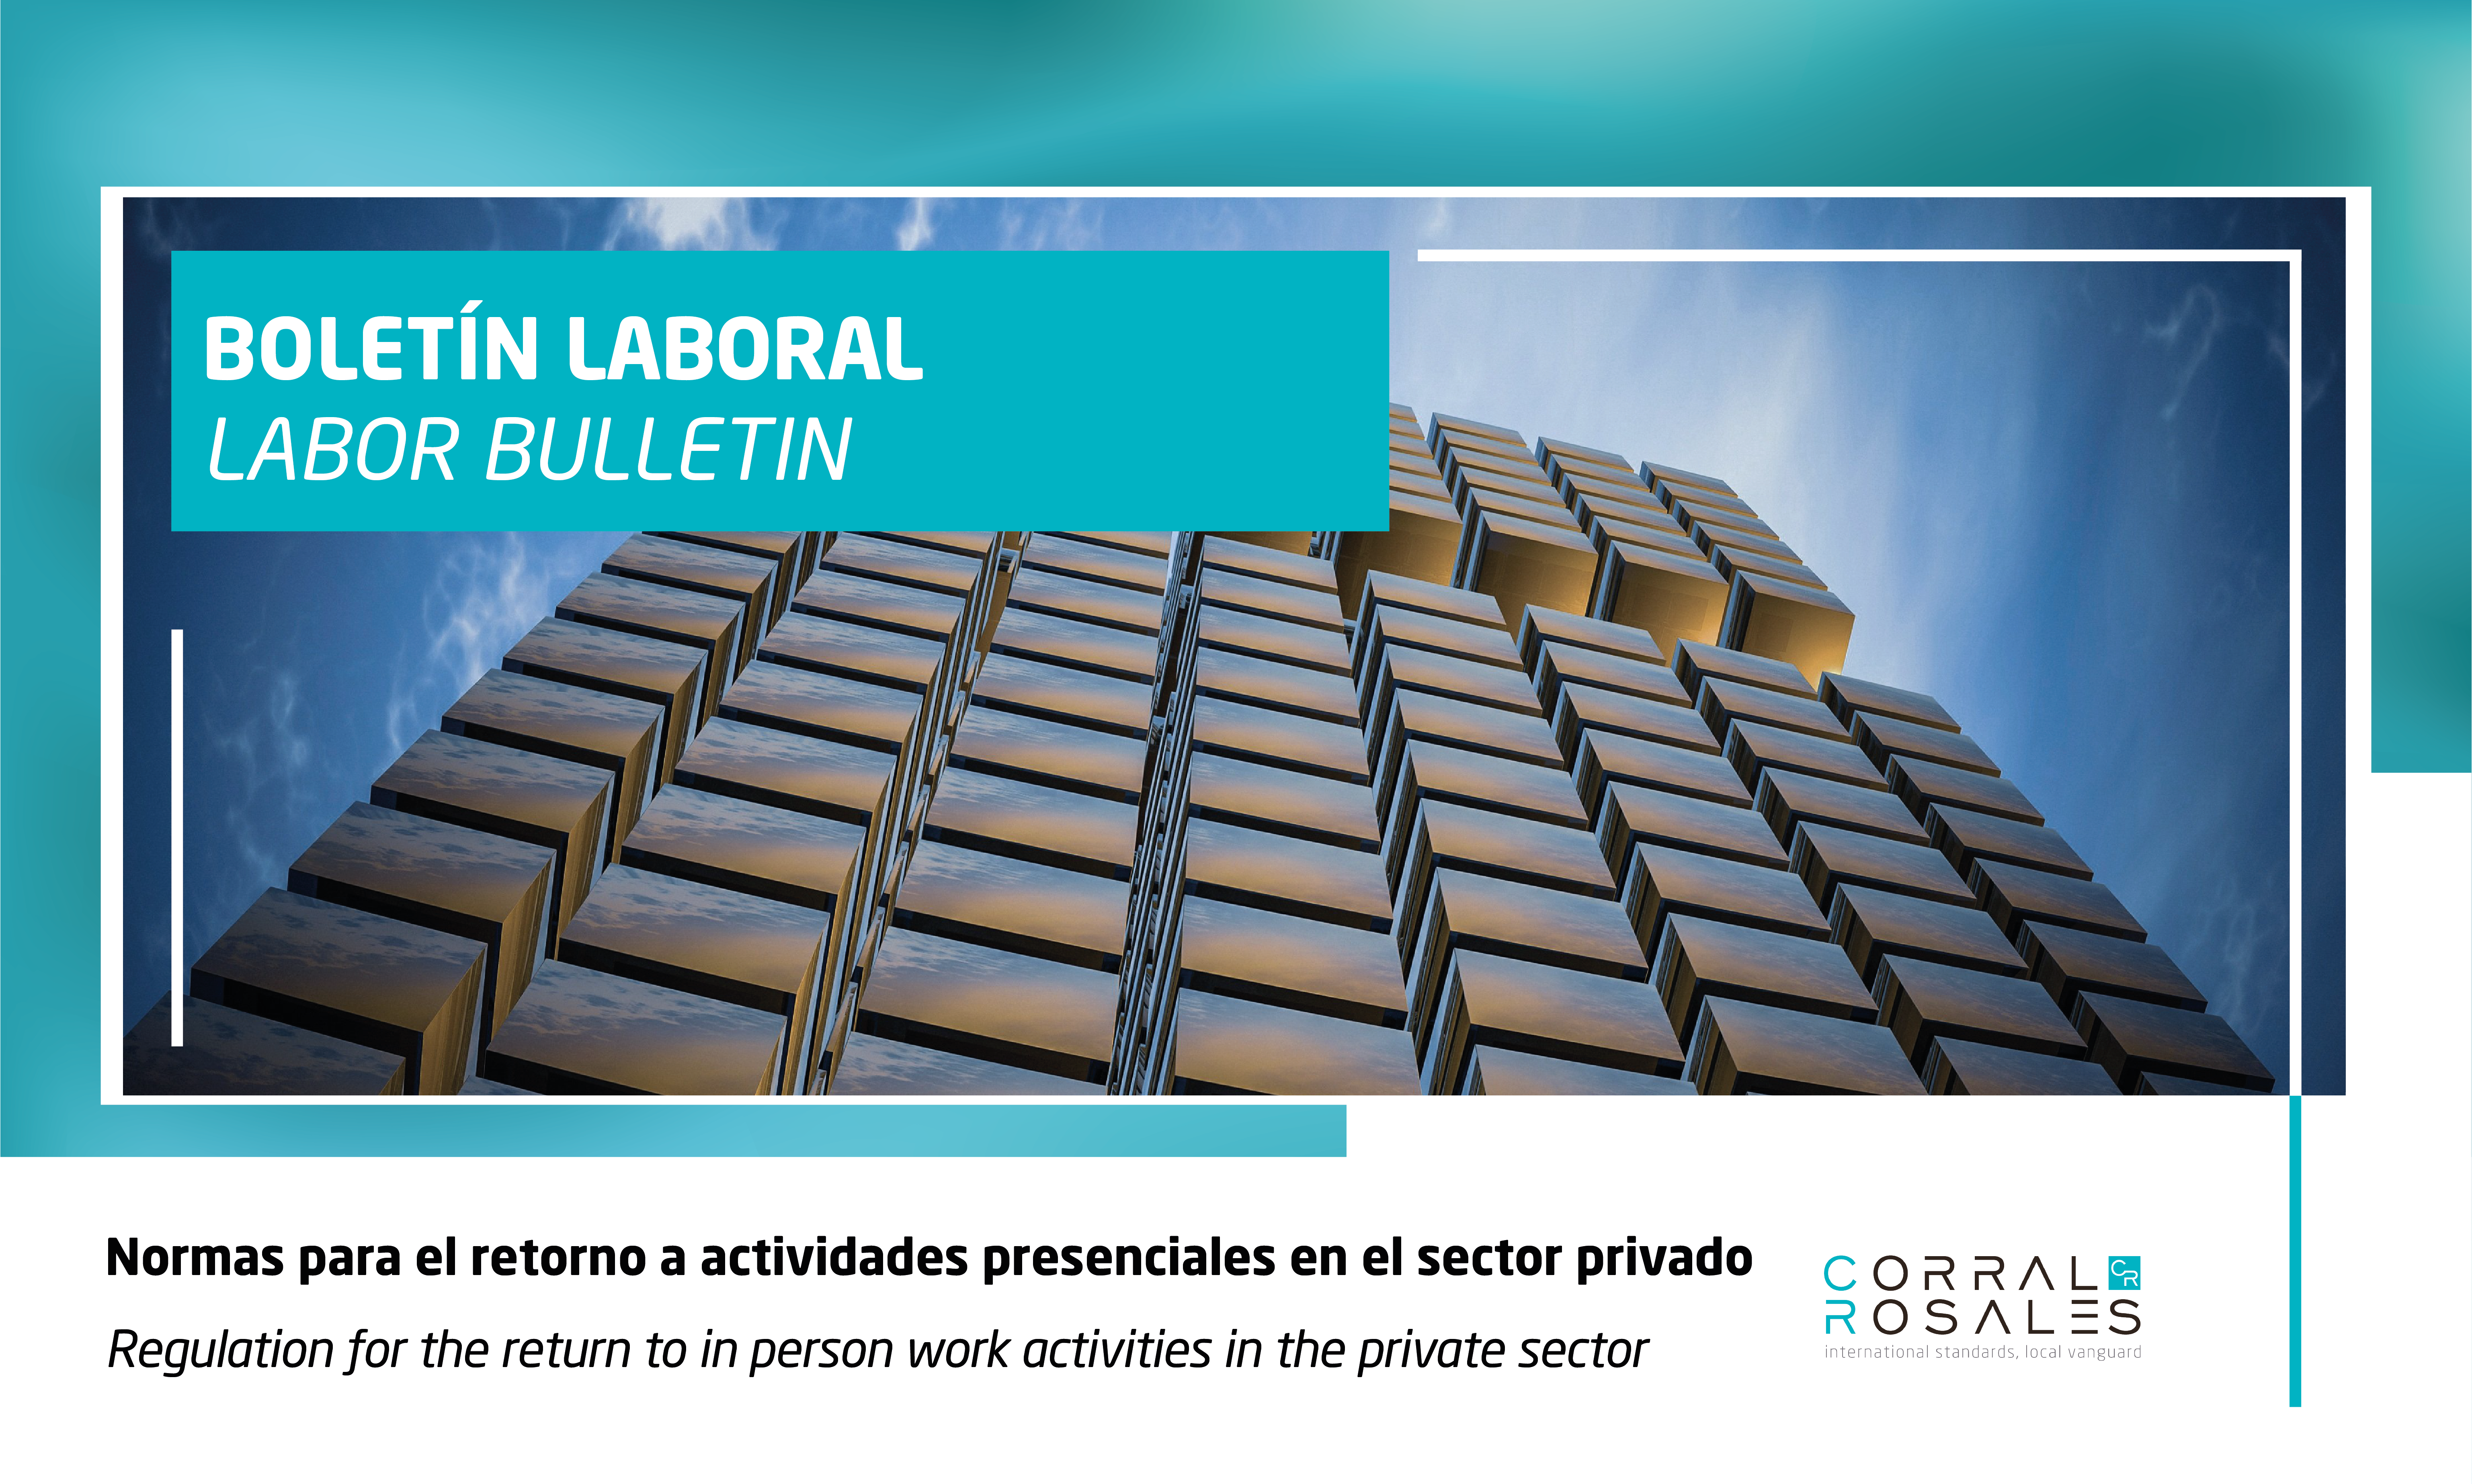 Regulations for the return to in person work activities in the private sector - CorralRosales - Lawyers in Ecuador